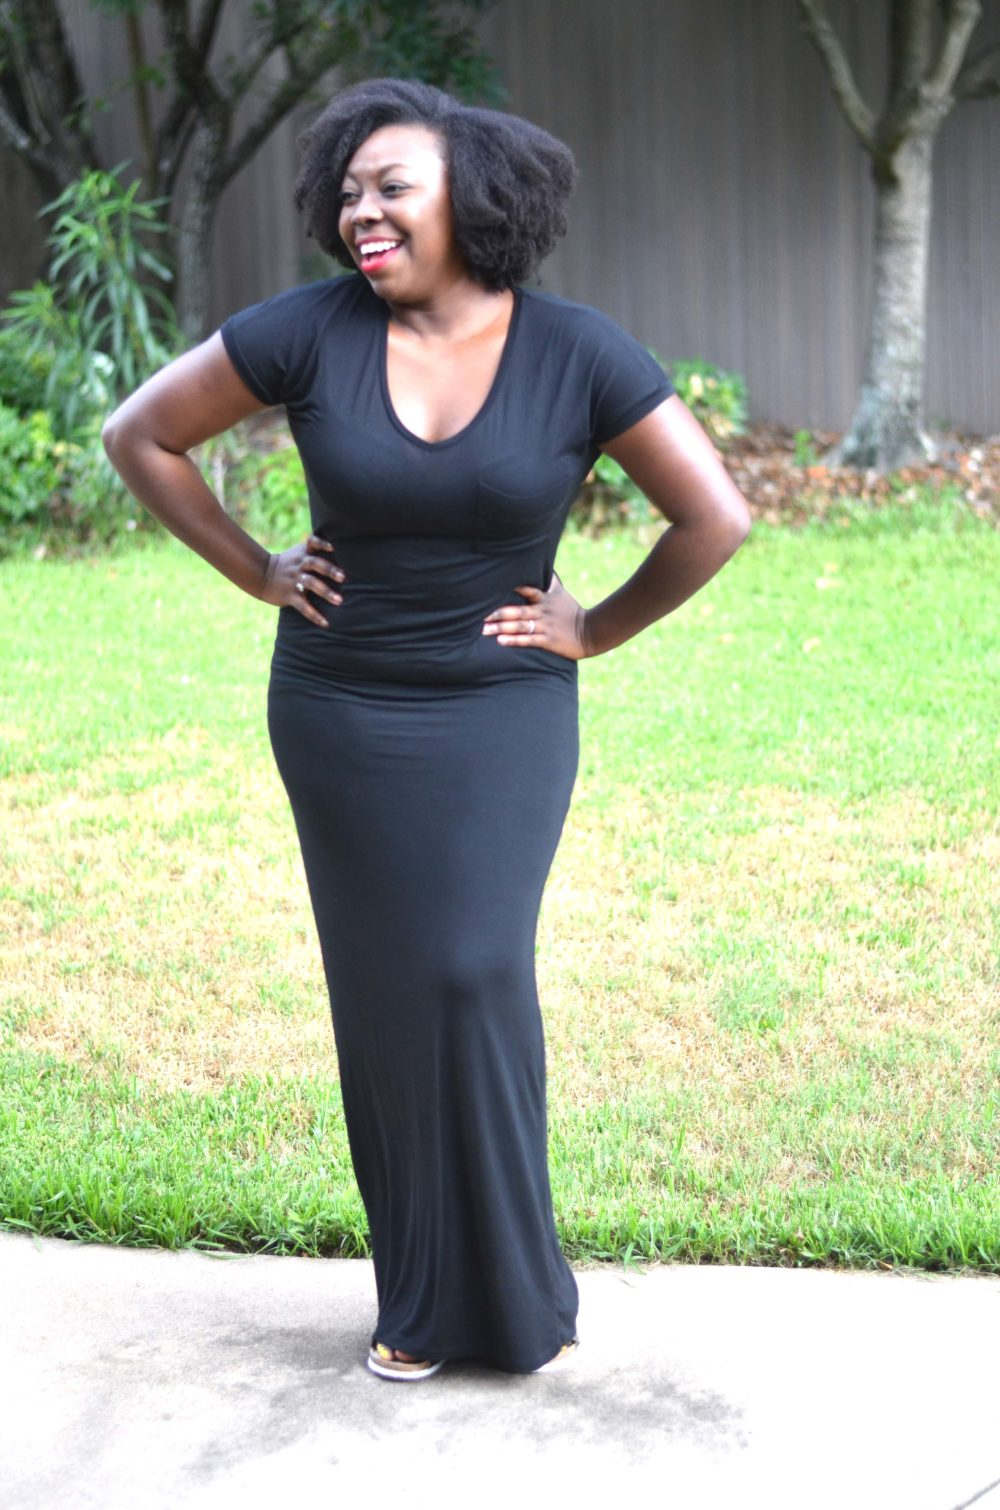 Black Maxi Dress - Natural Hair